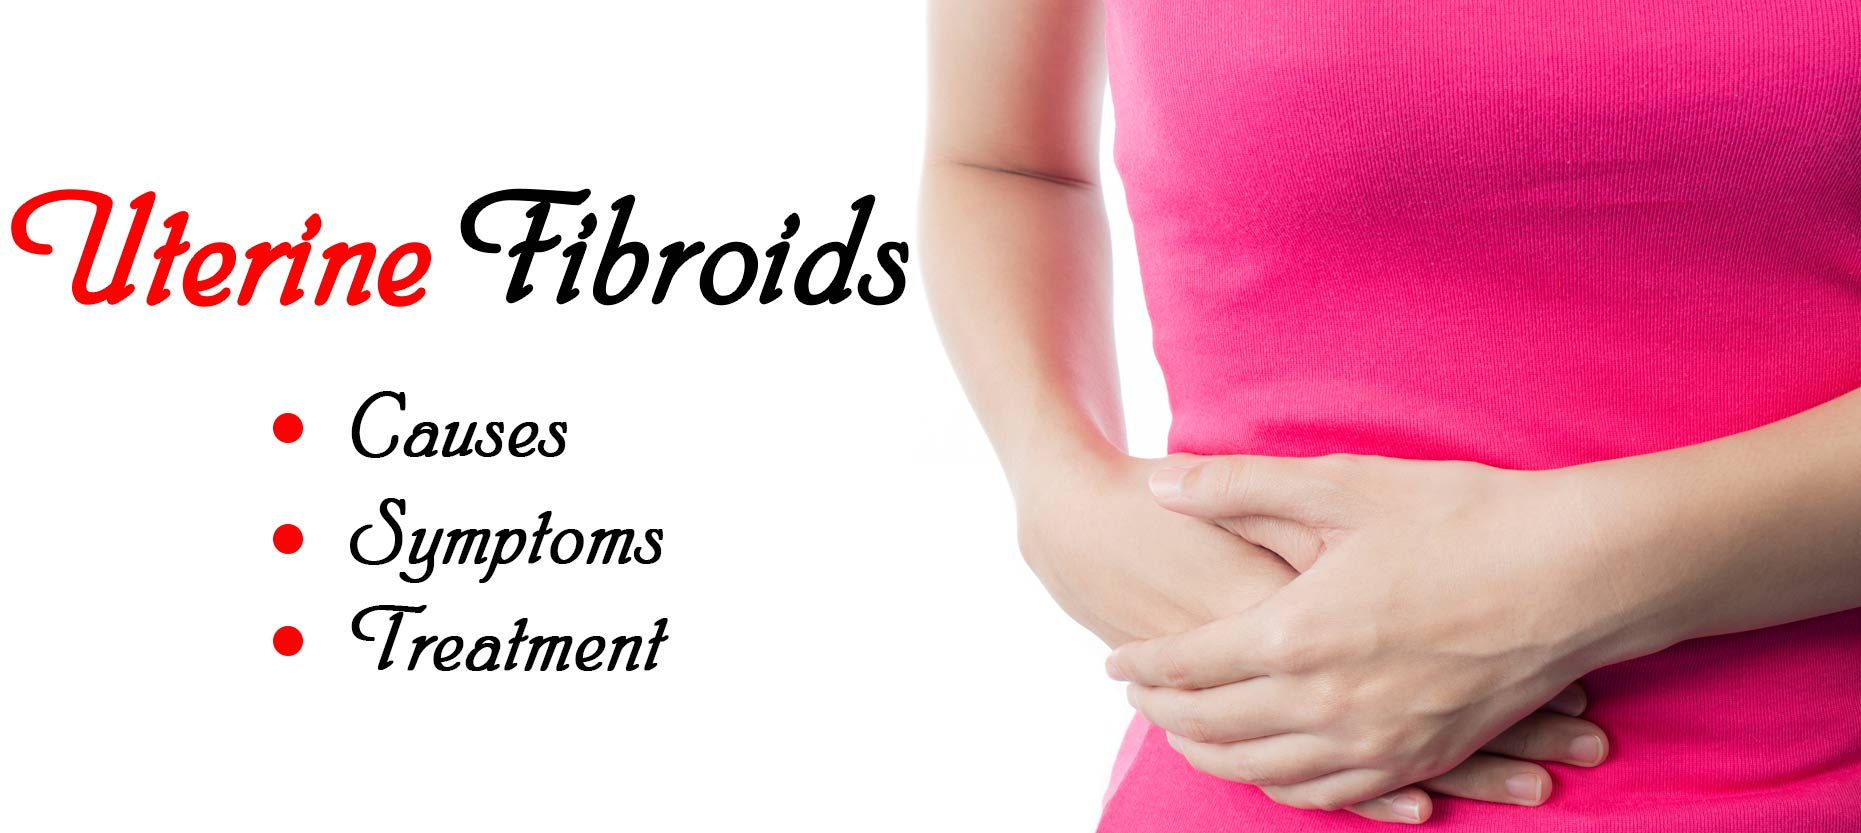 Uterine Fibroids : Symptoms, Causes and Treatment